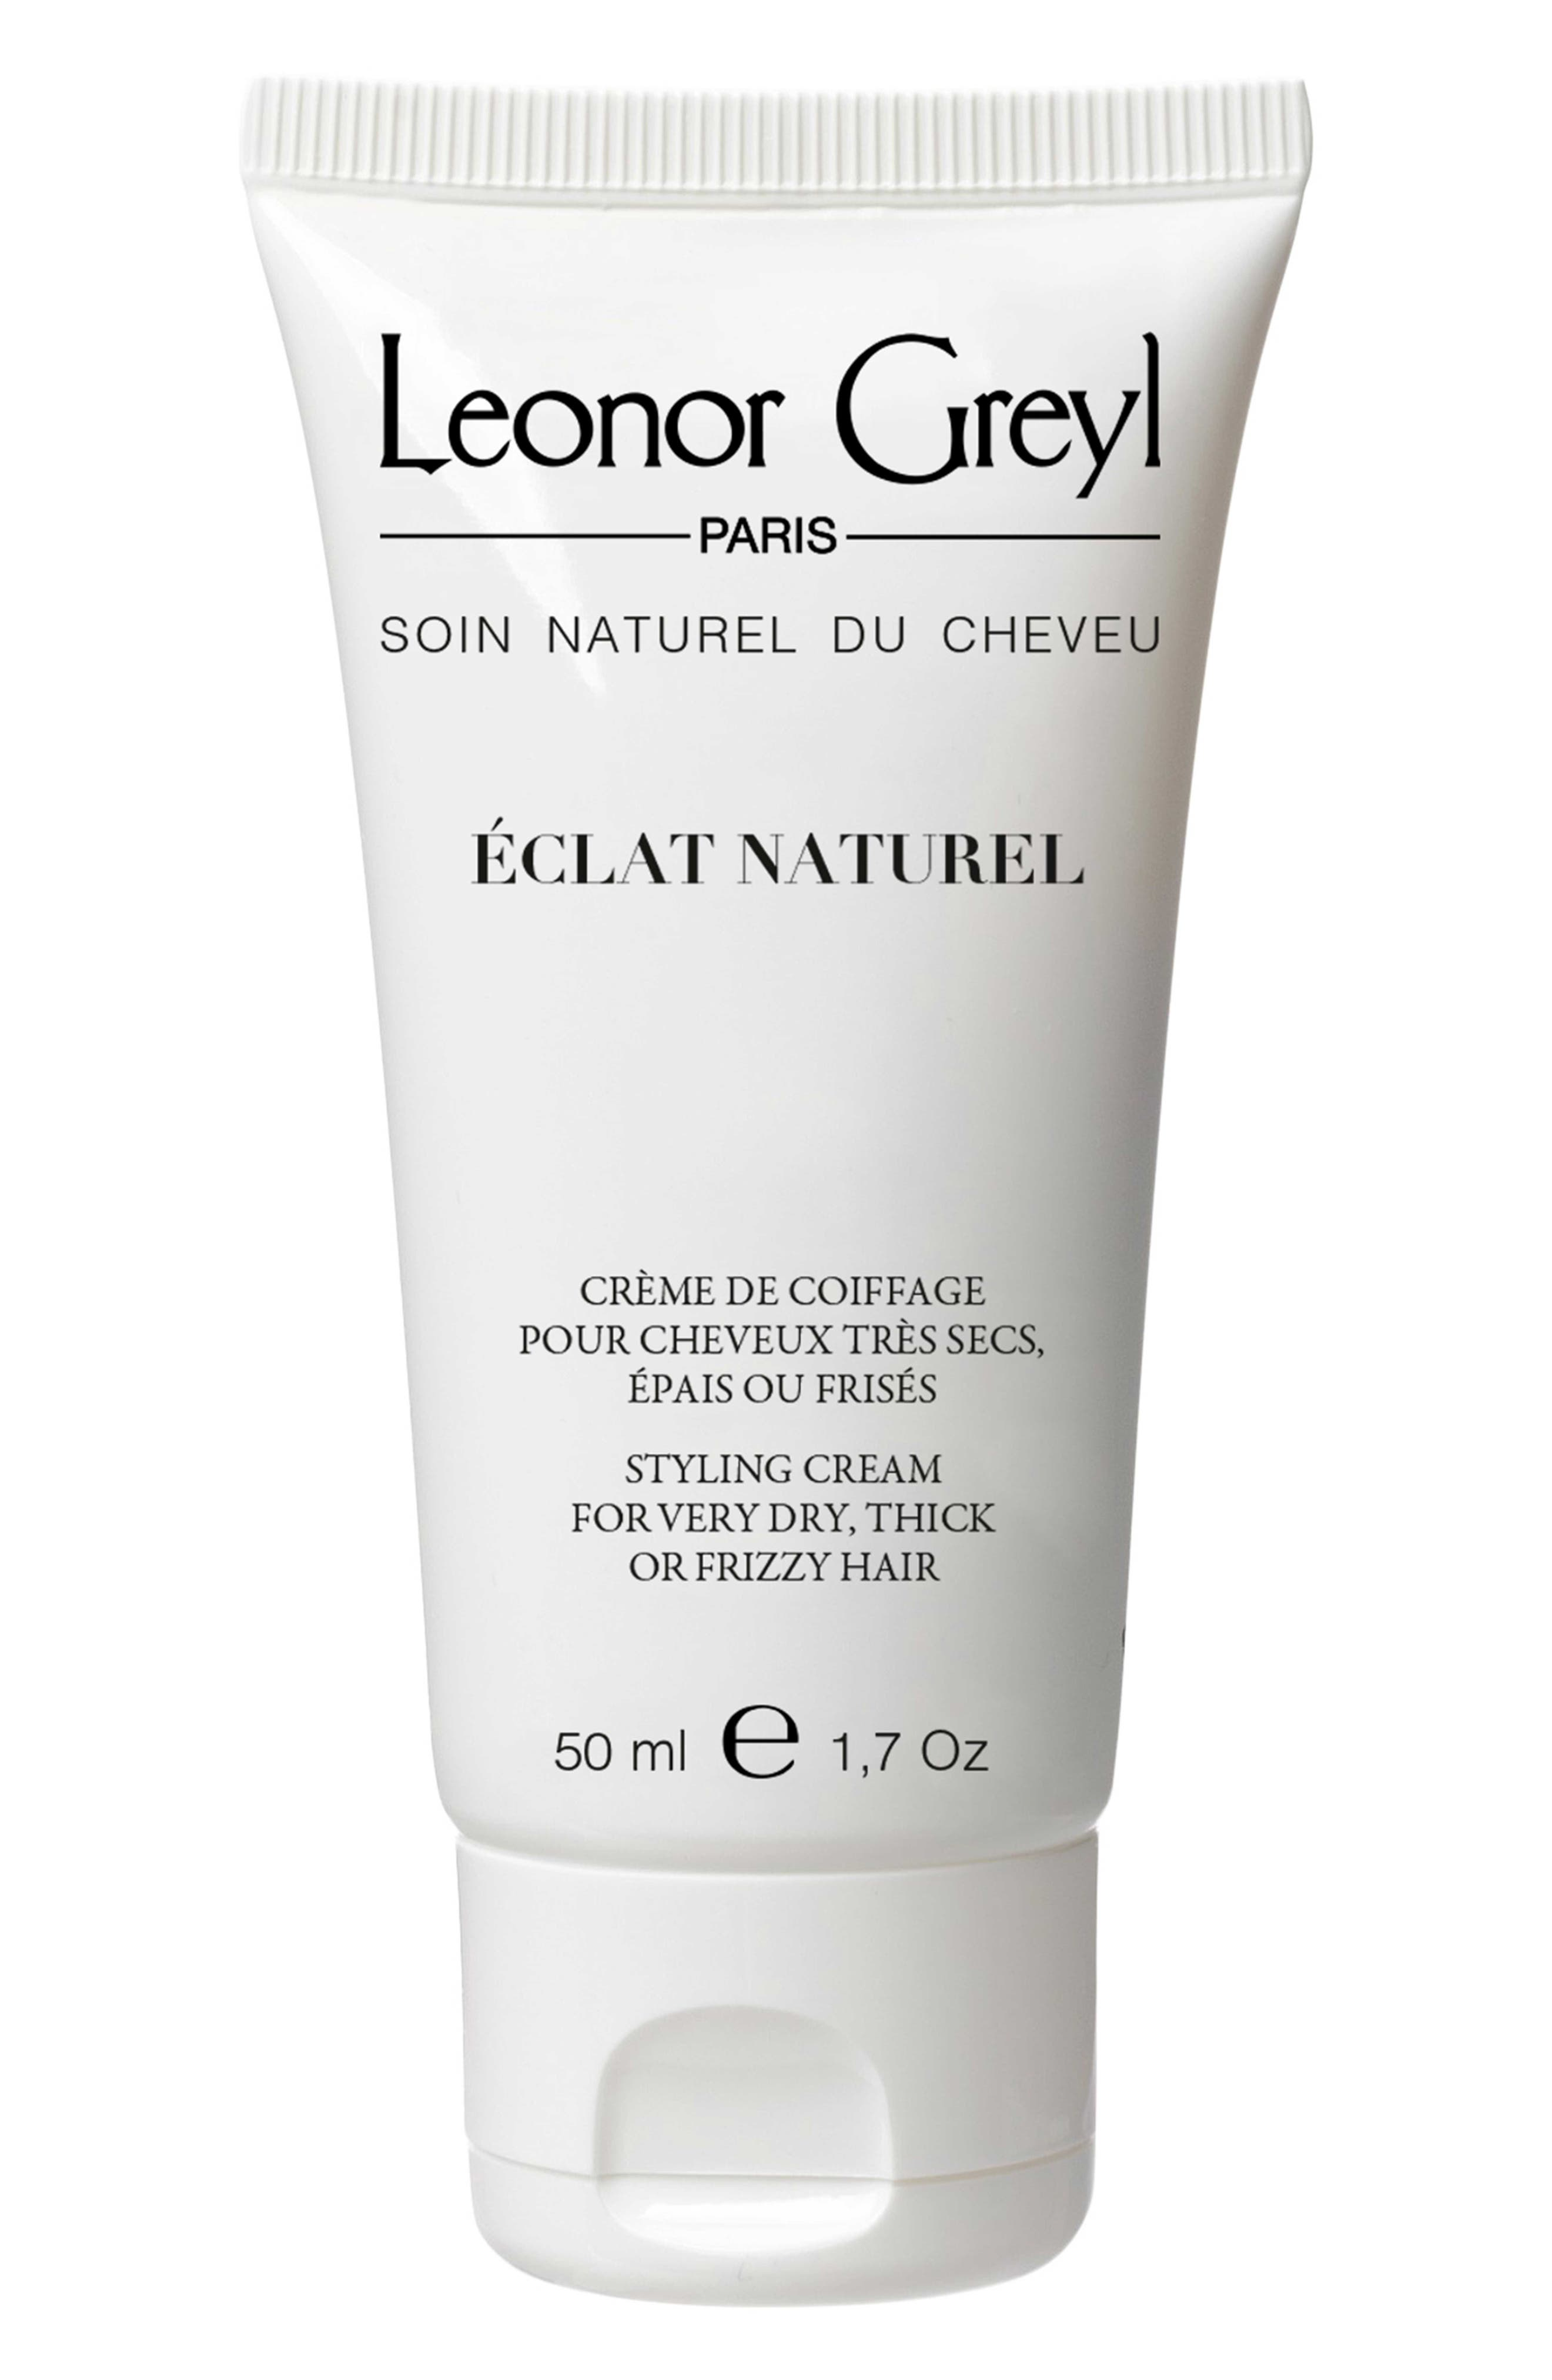 Leonor Greyl PARIS 'Éclat Naturel' Styling Cream